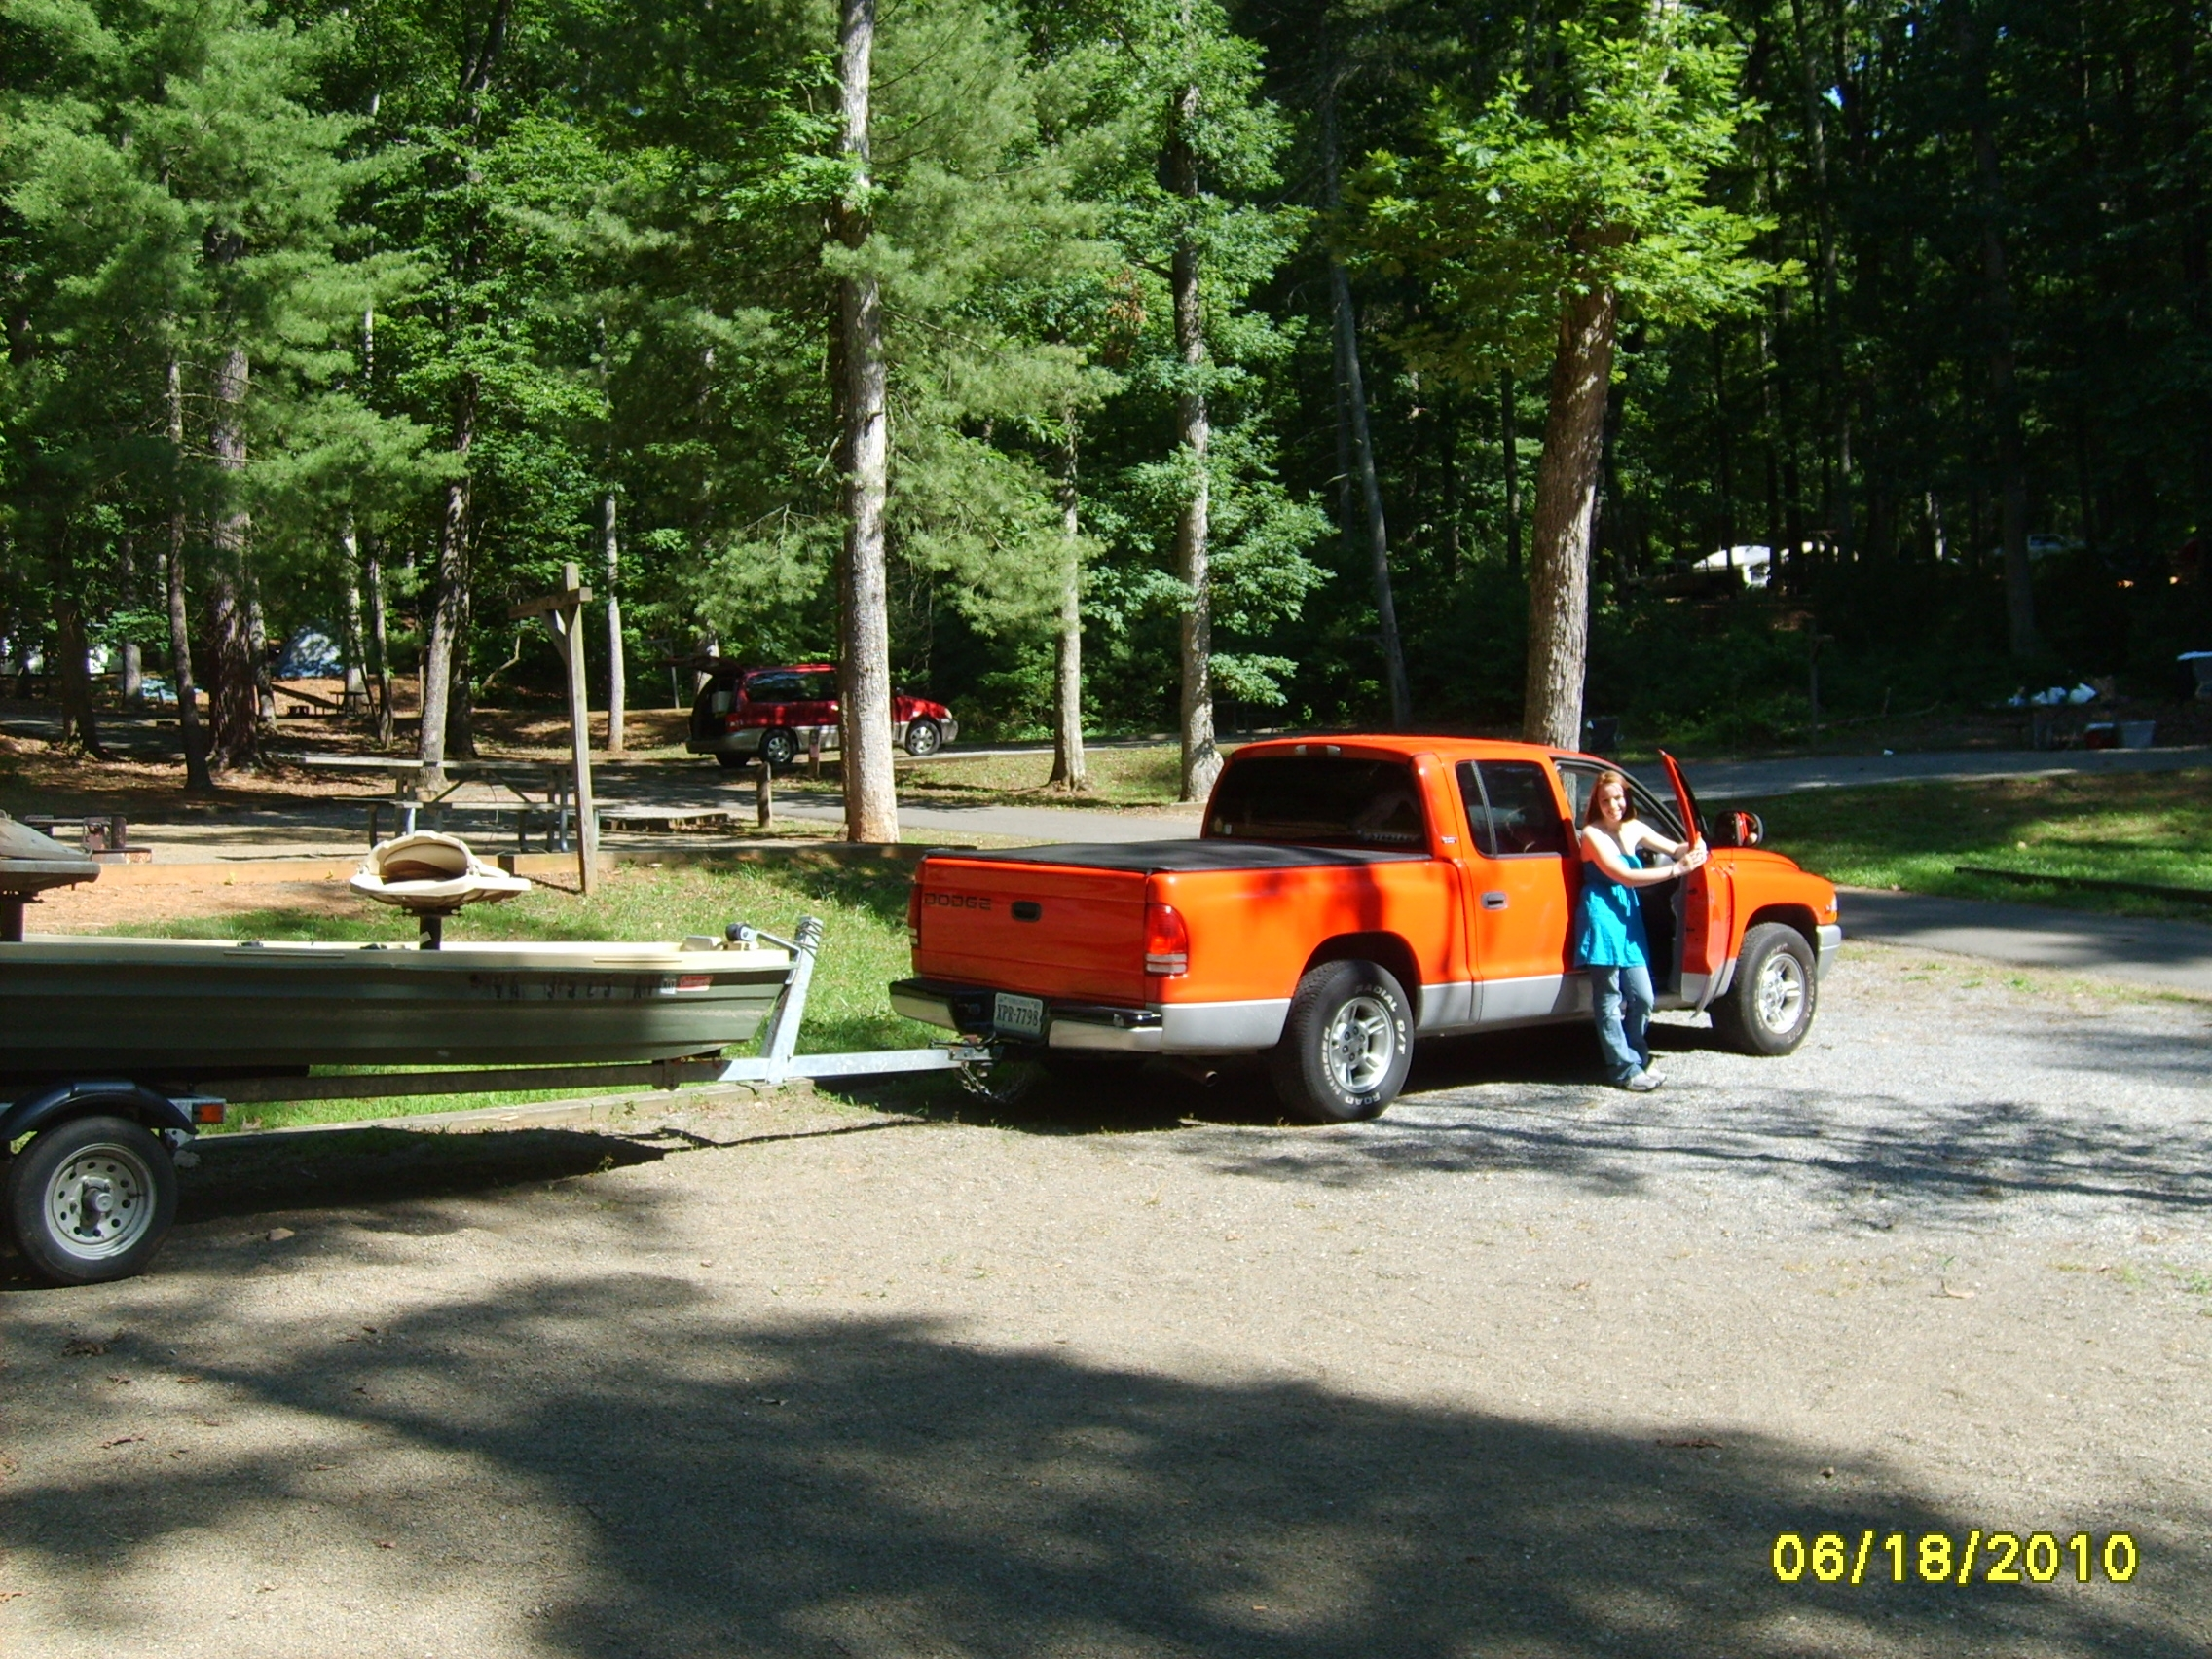 Thunder_Hokie's 2000 Dodge Dakota Quad Cab